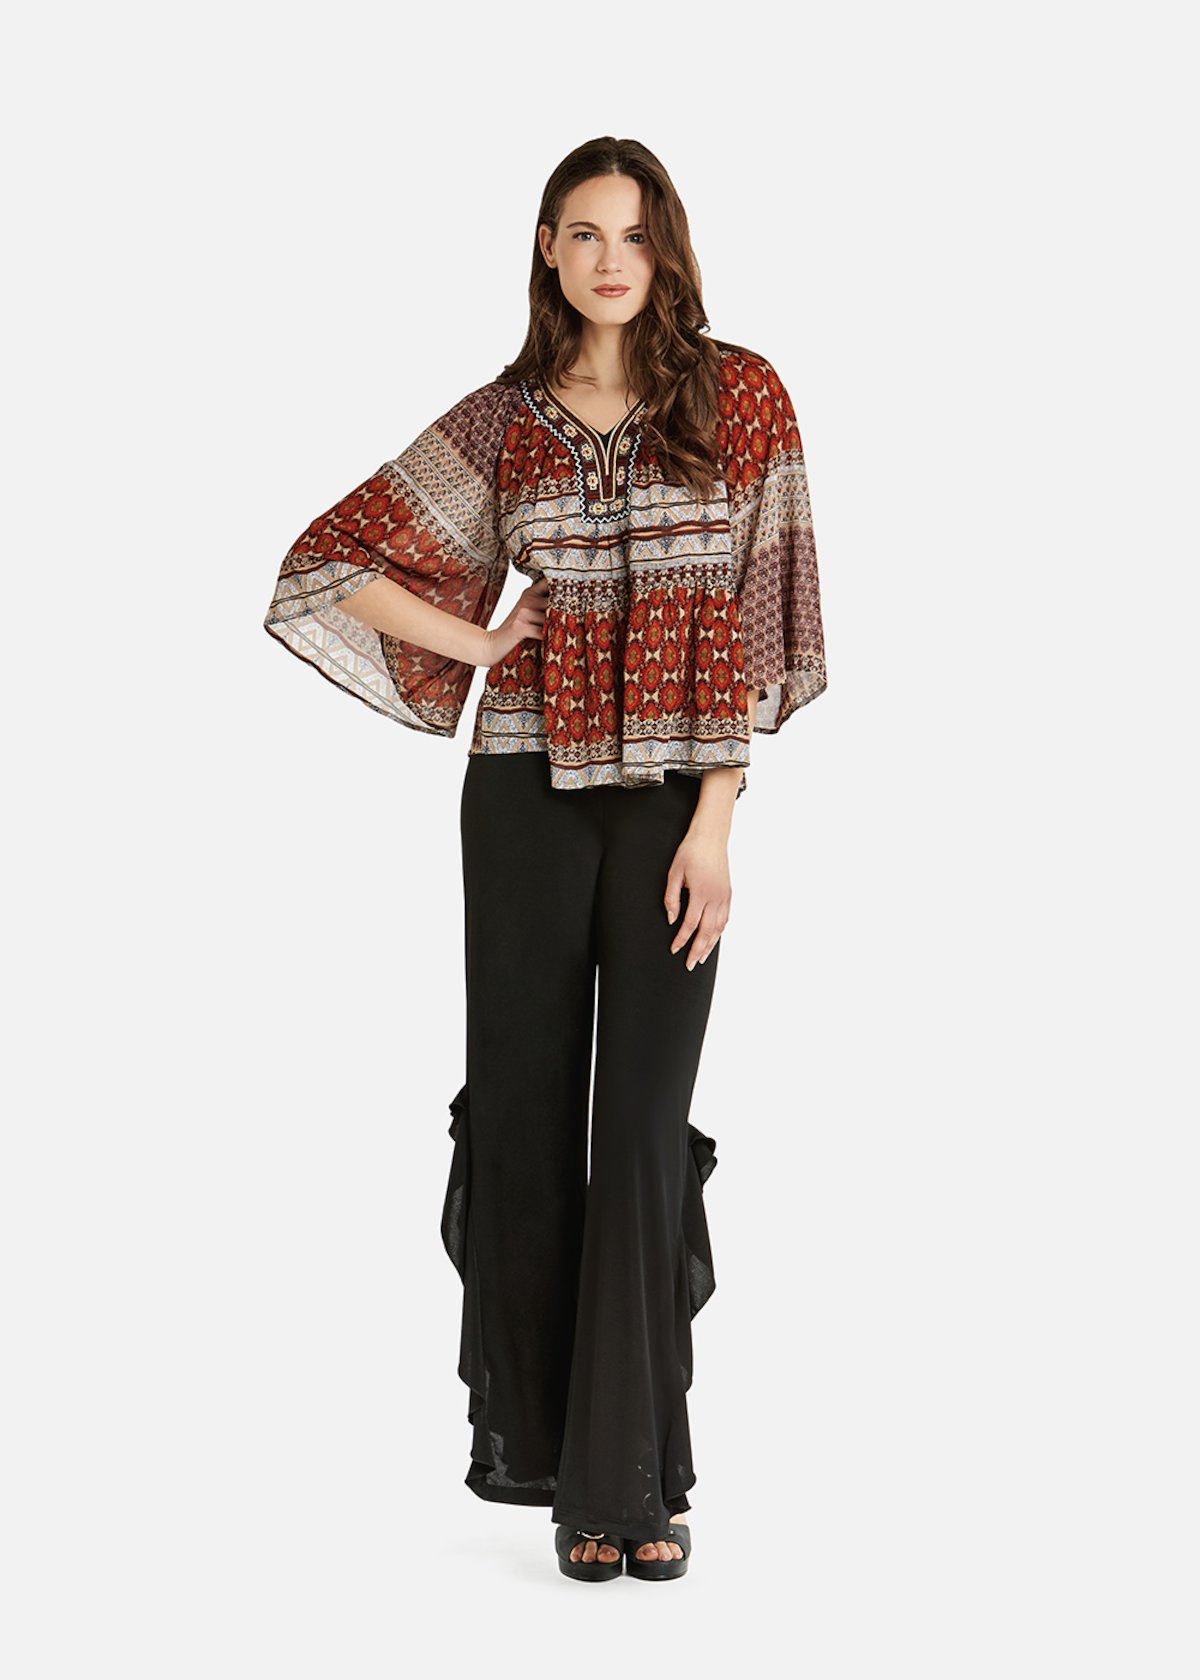 Blusa Cales with ethnic print and beads